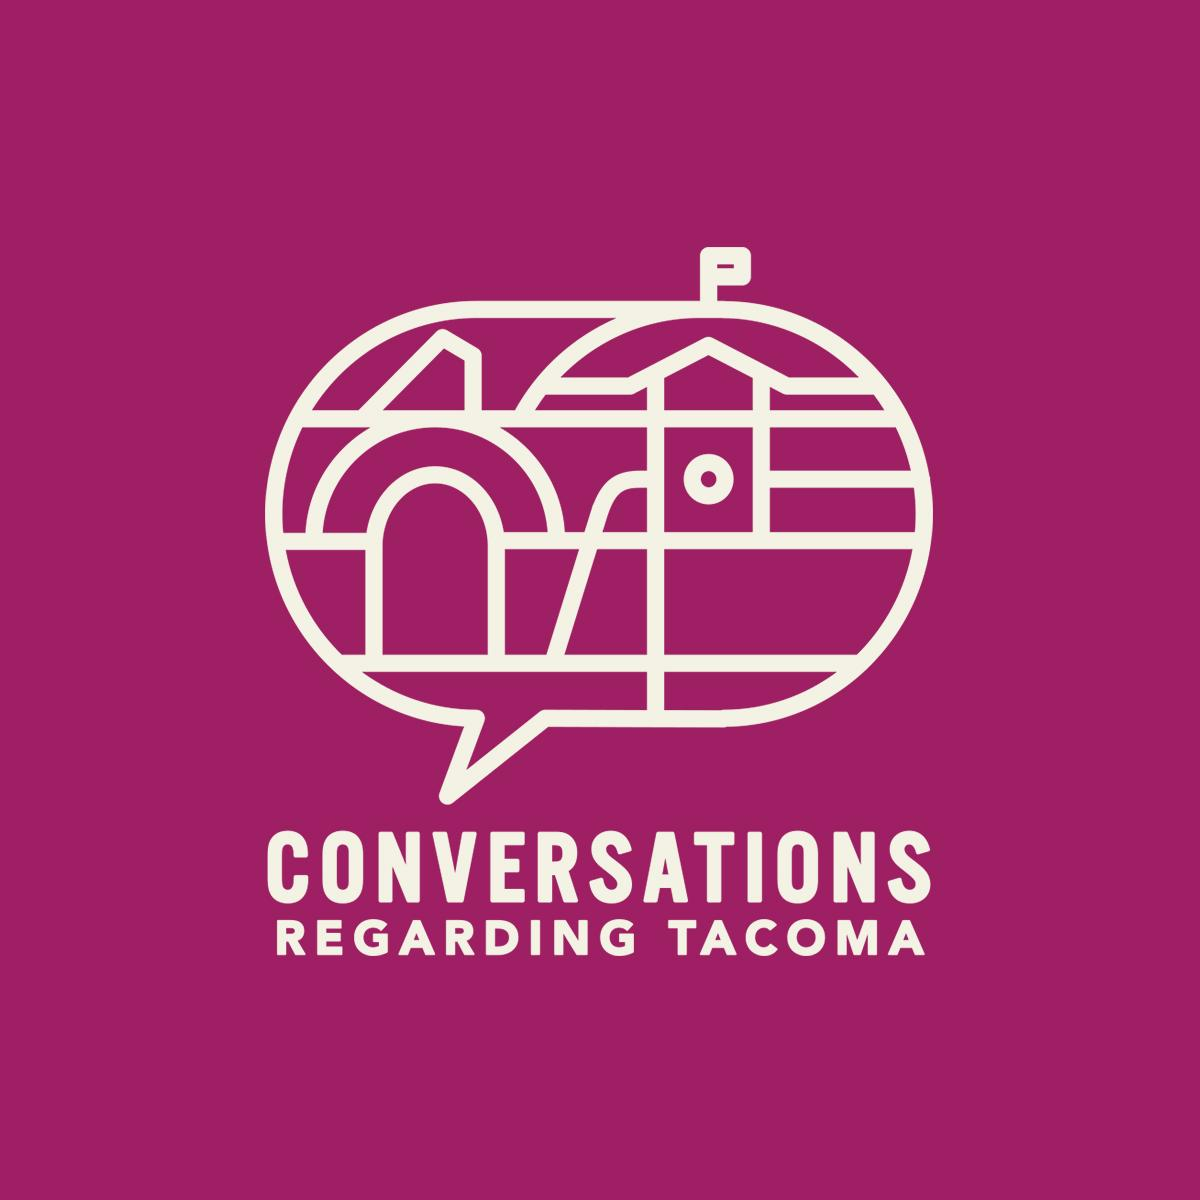 Conversations Regarding Tacoma<br>Logo/Branding/Website<br>www.tacomaconversations.org